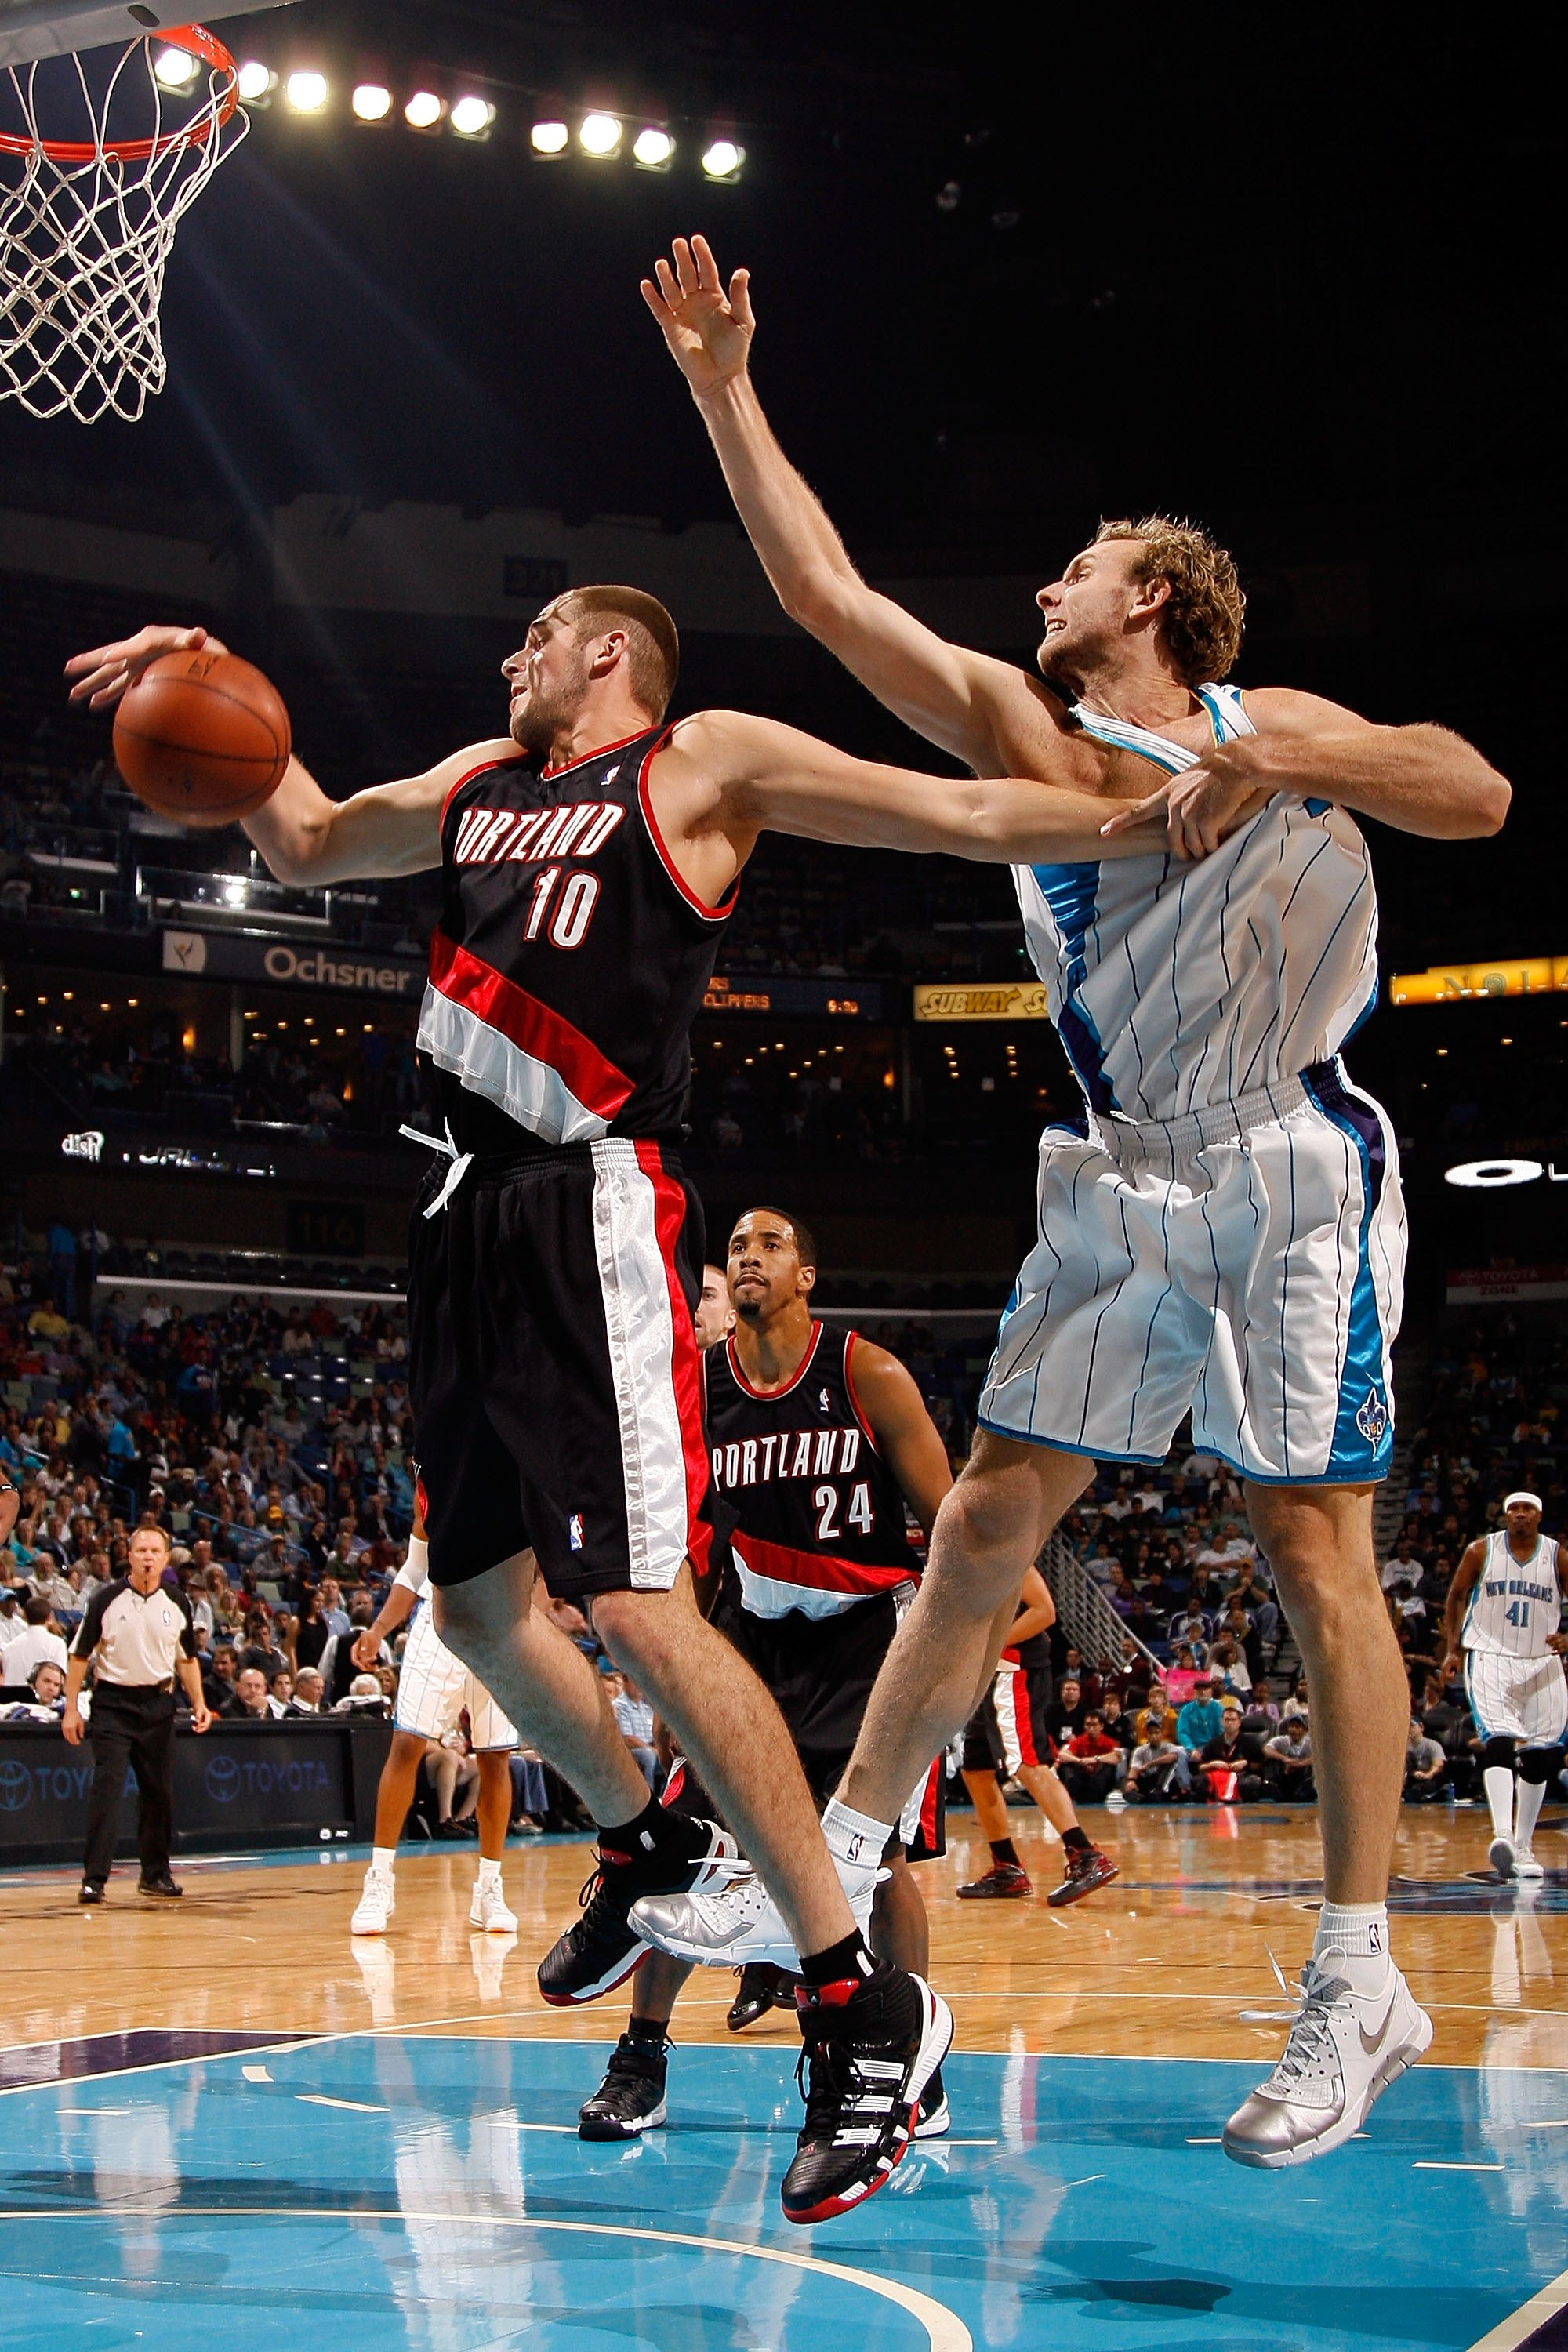 NEW ORLEANS - NOVEMBER 13:  Joel Przybilla #10 of the Portland Trail Blazers fights for a rebound with Sean Marks #4 of the New Orleans Hornets at the New Orleans Arena on November 13, 2009 in New Orleans, Louisiana.  NOTE TO USER: User expressly acknowle